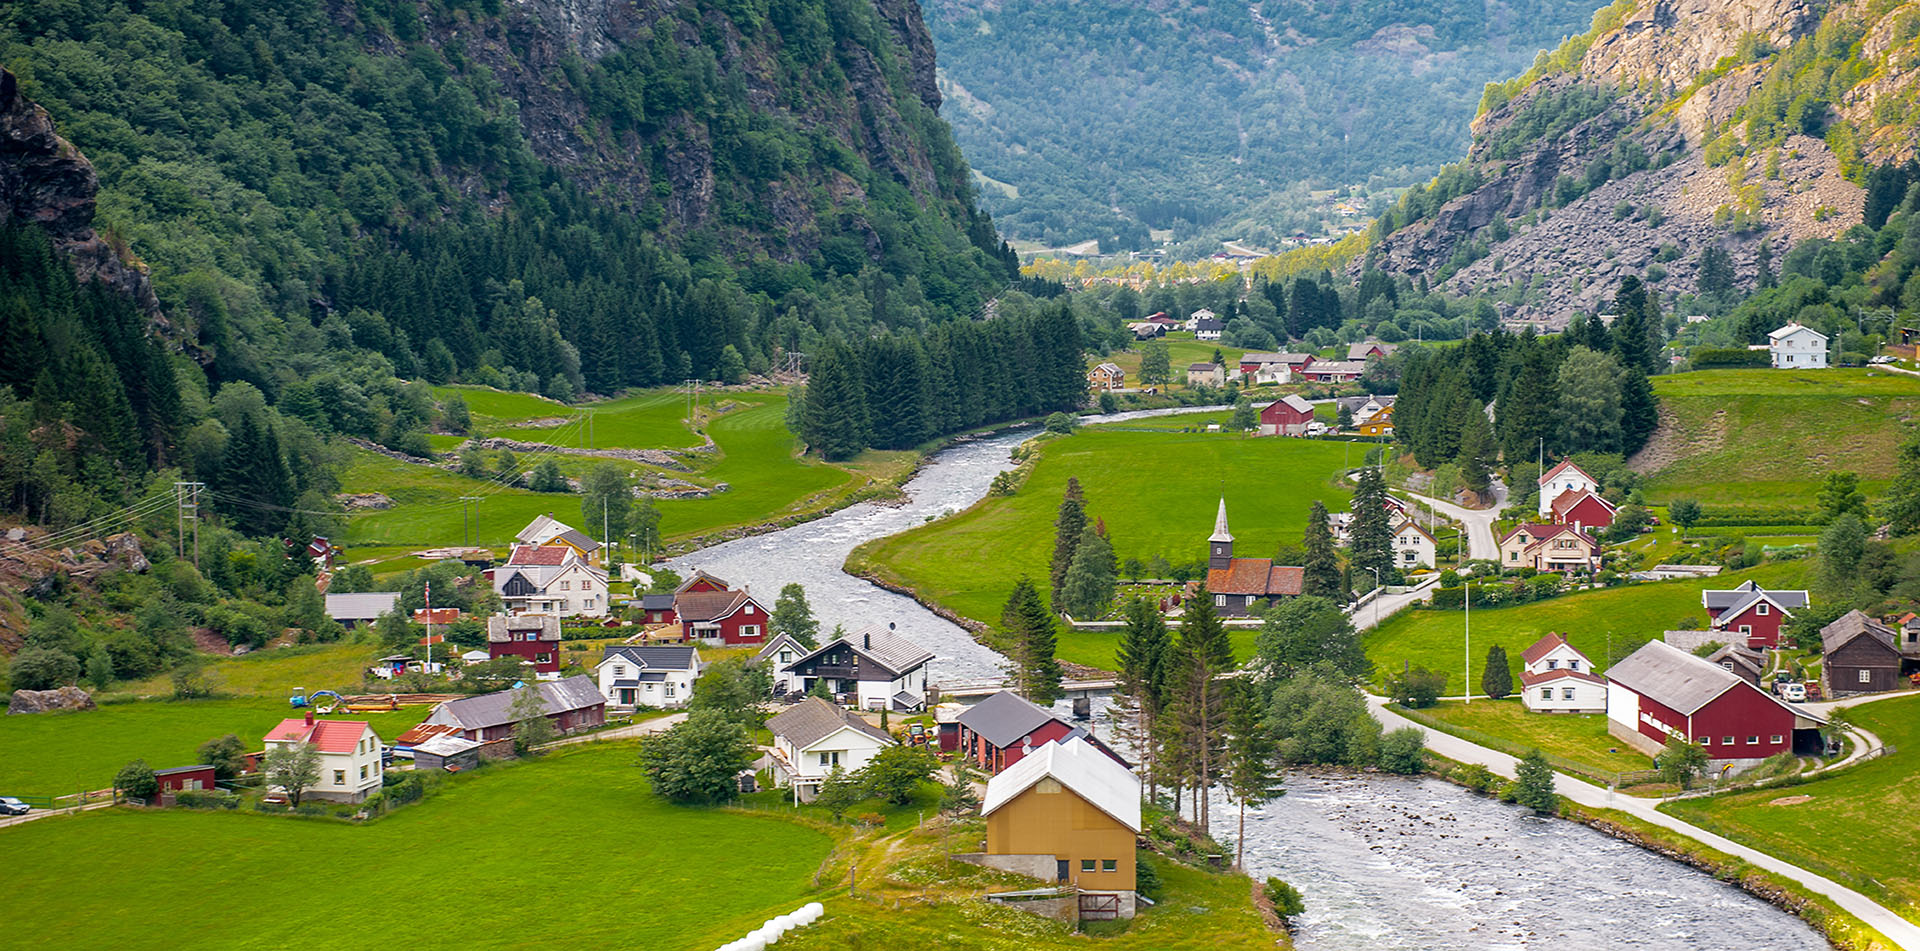 Europe Norway village of Flam along the river in fjord lands - luxury vacation destinations